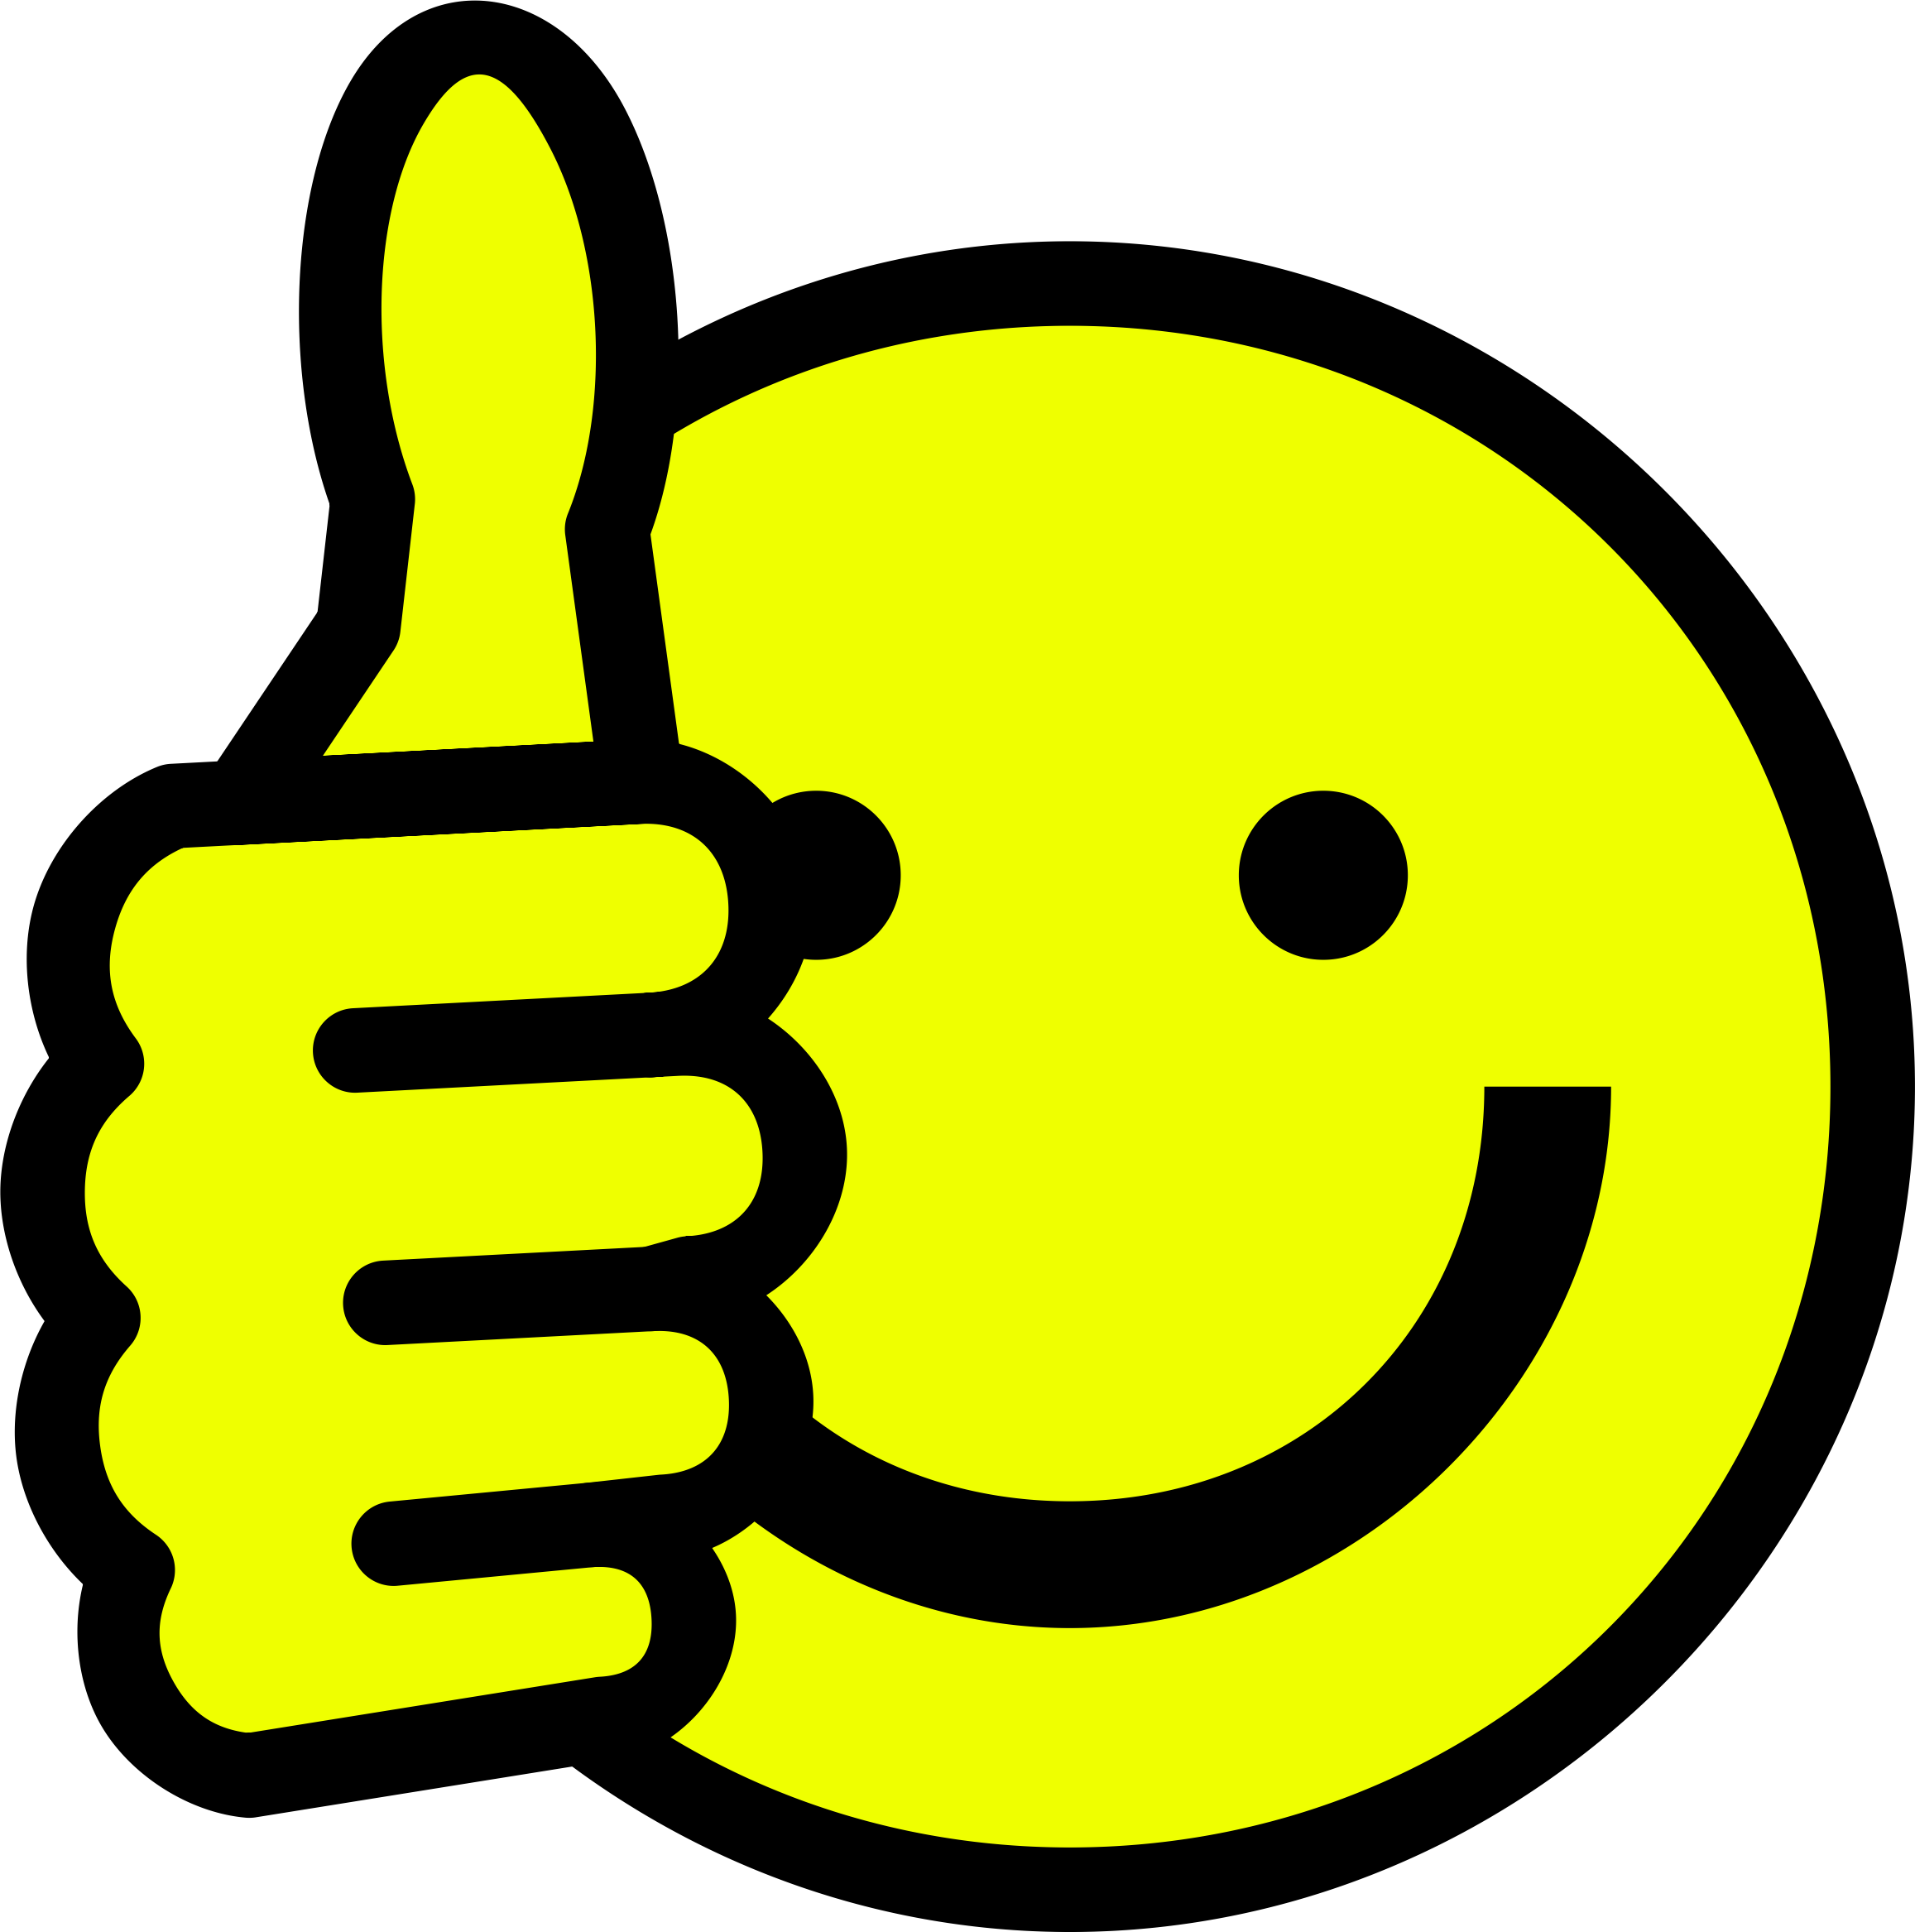 picture royalty free stock Thumbs clipart yellow. Smiley png images free